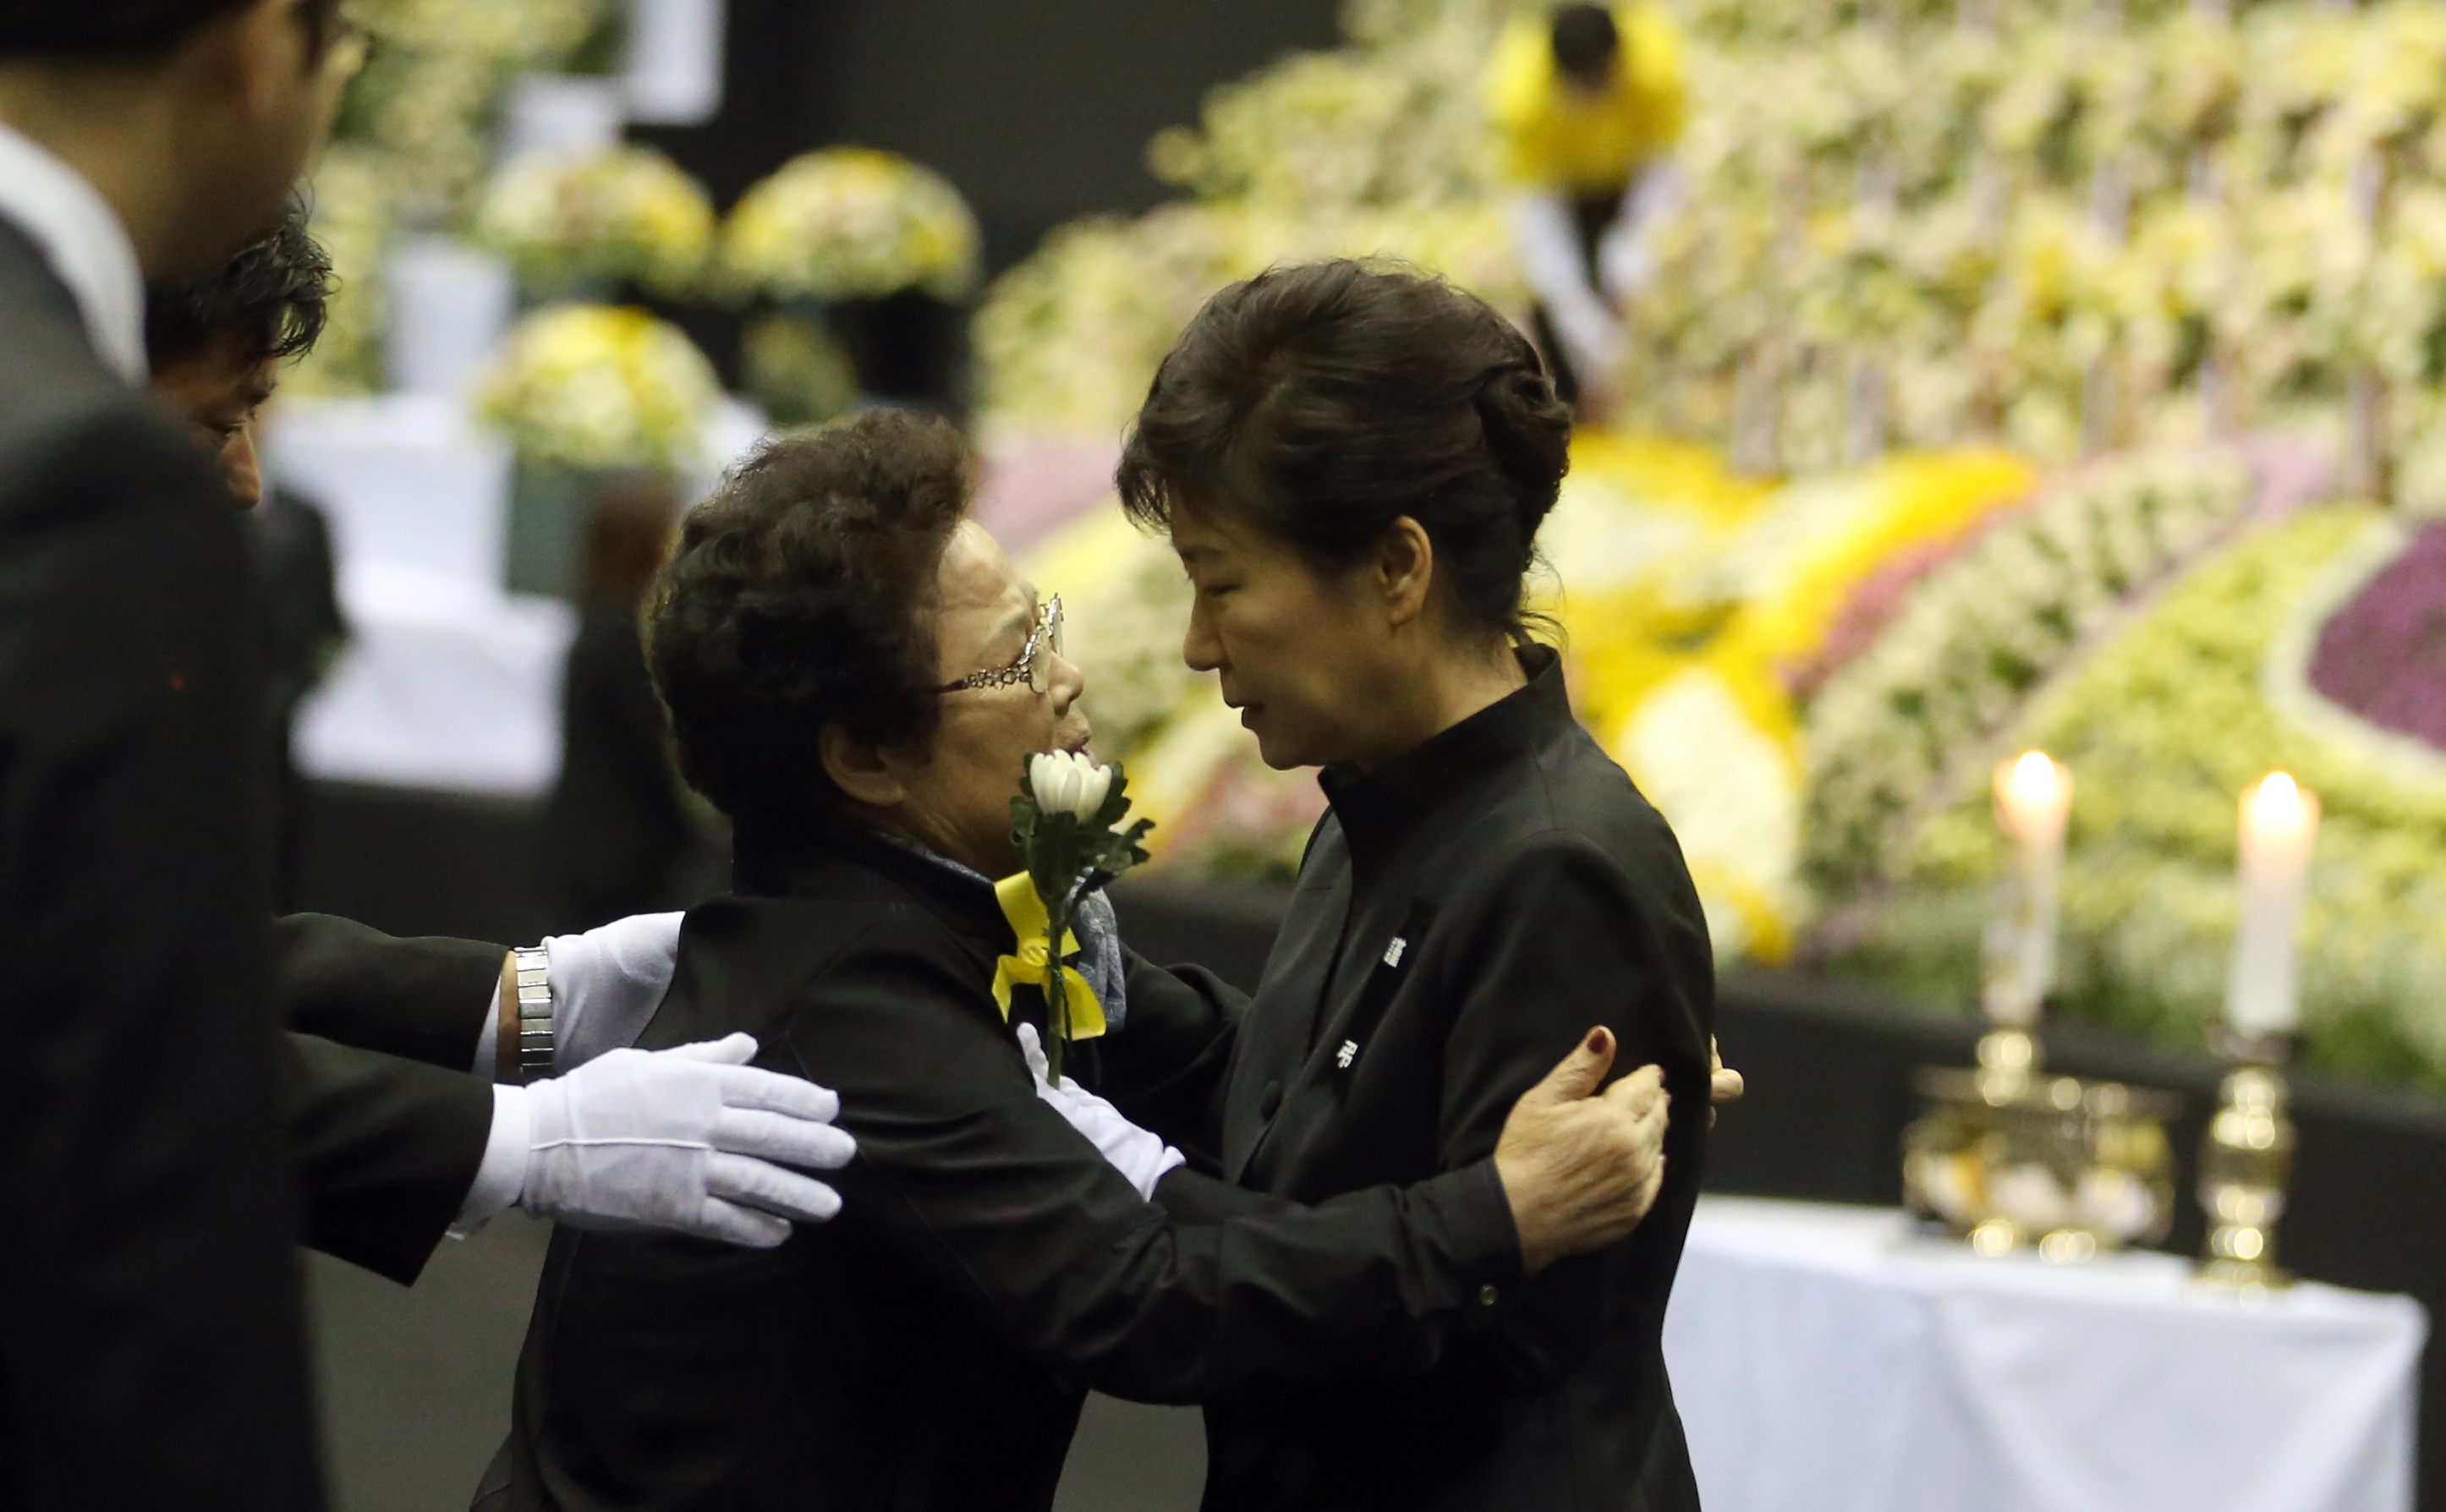 South Korean President Park Geun-hye, right, comforts a mourner as she pays tribute to the victims of the sunken ferry Sewol at a group memorial altar in Ansan, south of Seoul, South Korea, Tuesday, April 29, 2014.  (Yonhap)